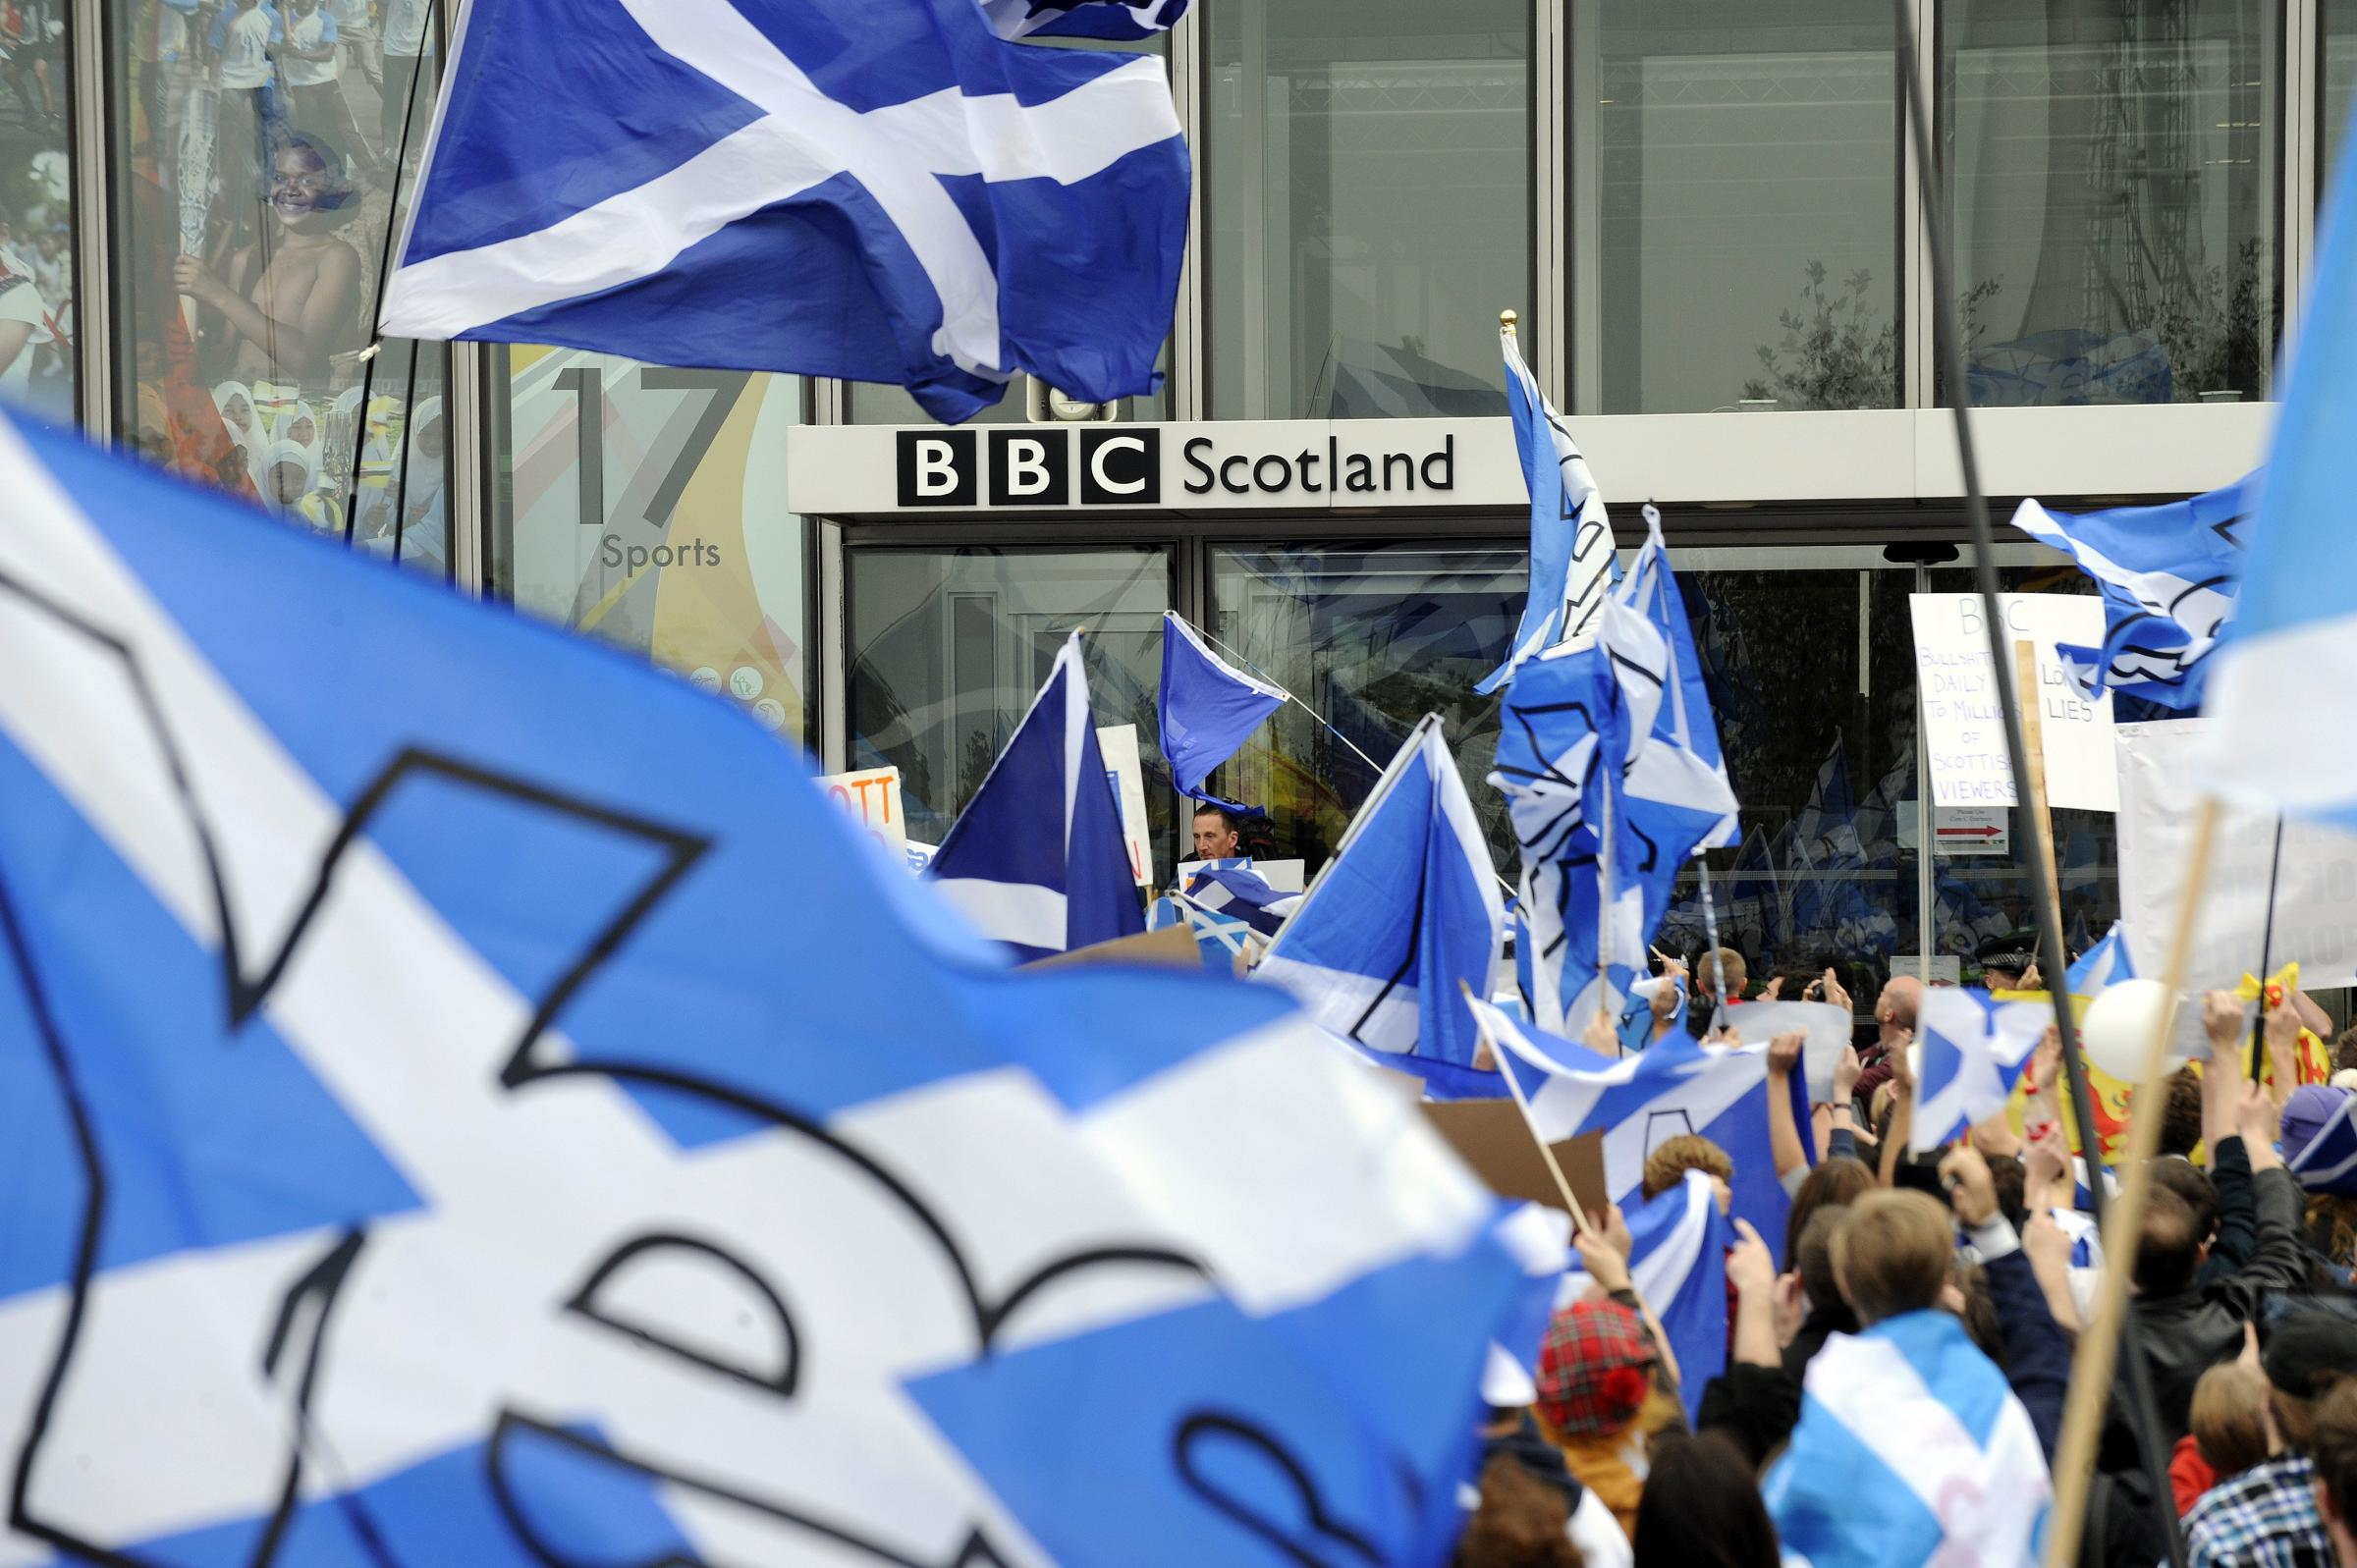 Confirmed: 'BBC journalists thought it was their job to make Yes campaign look foolish'